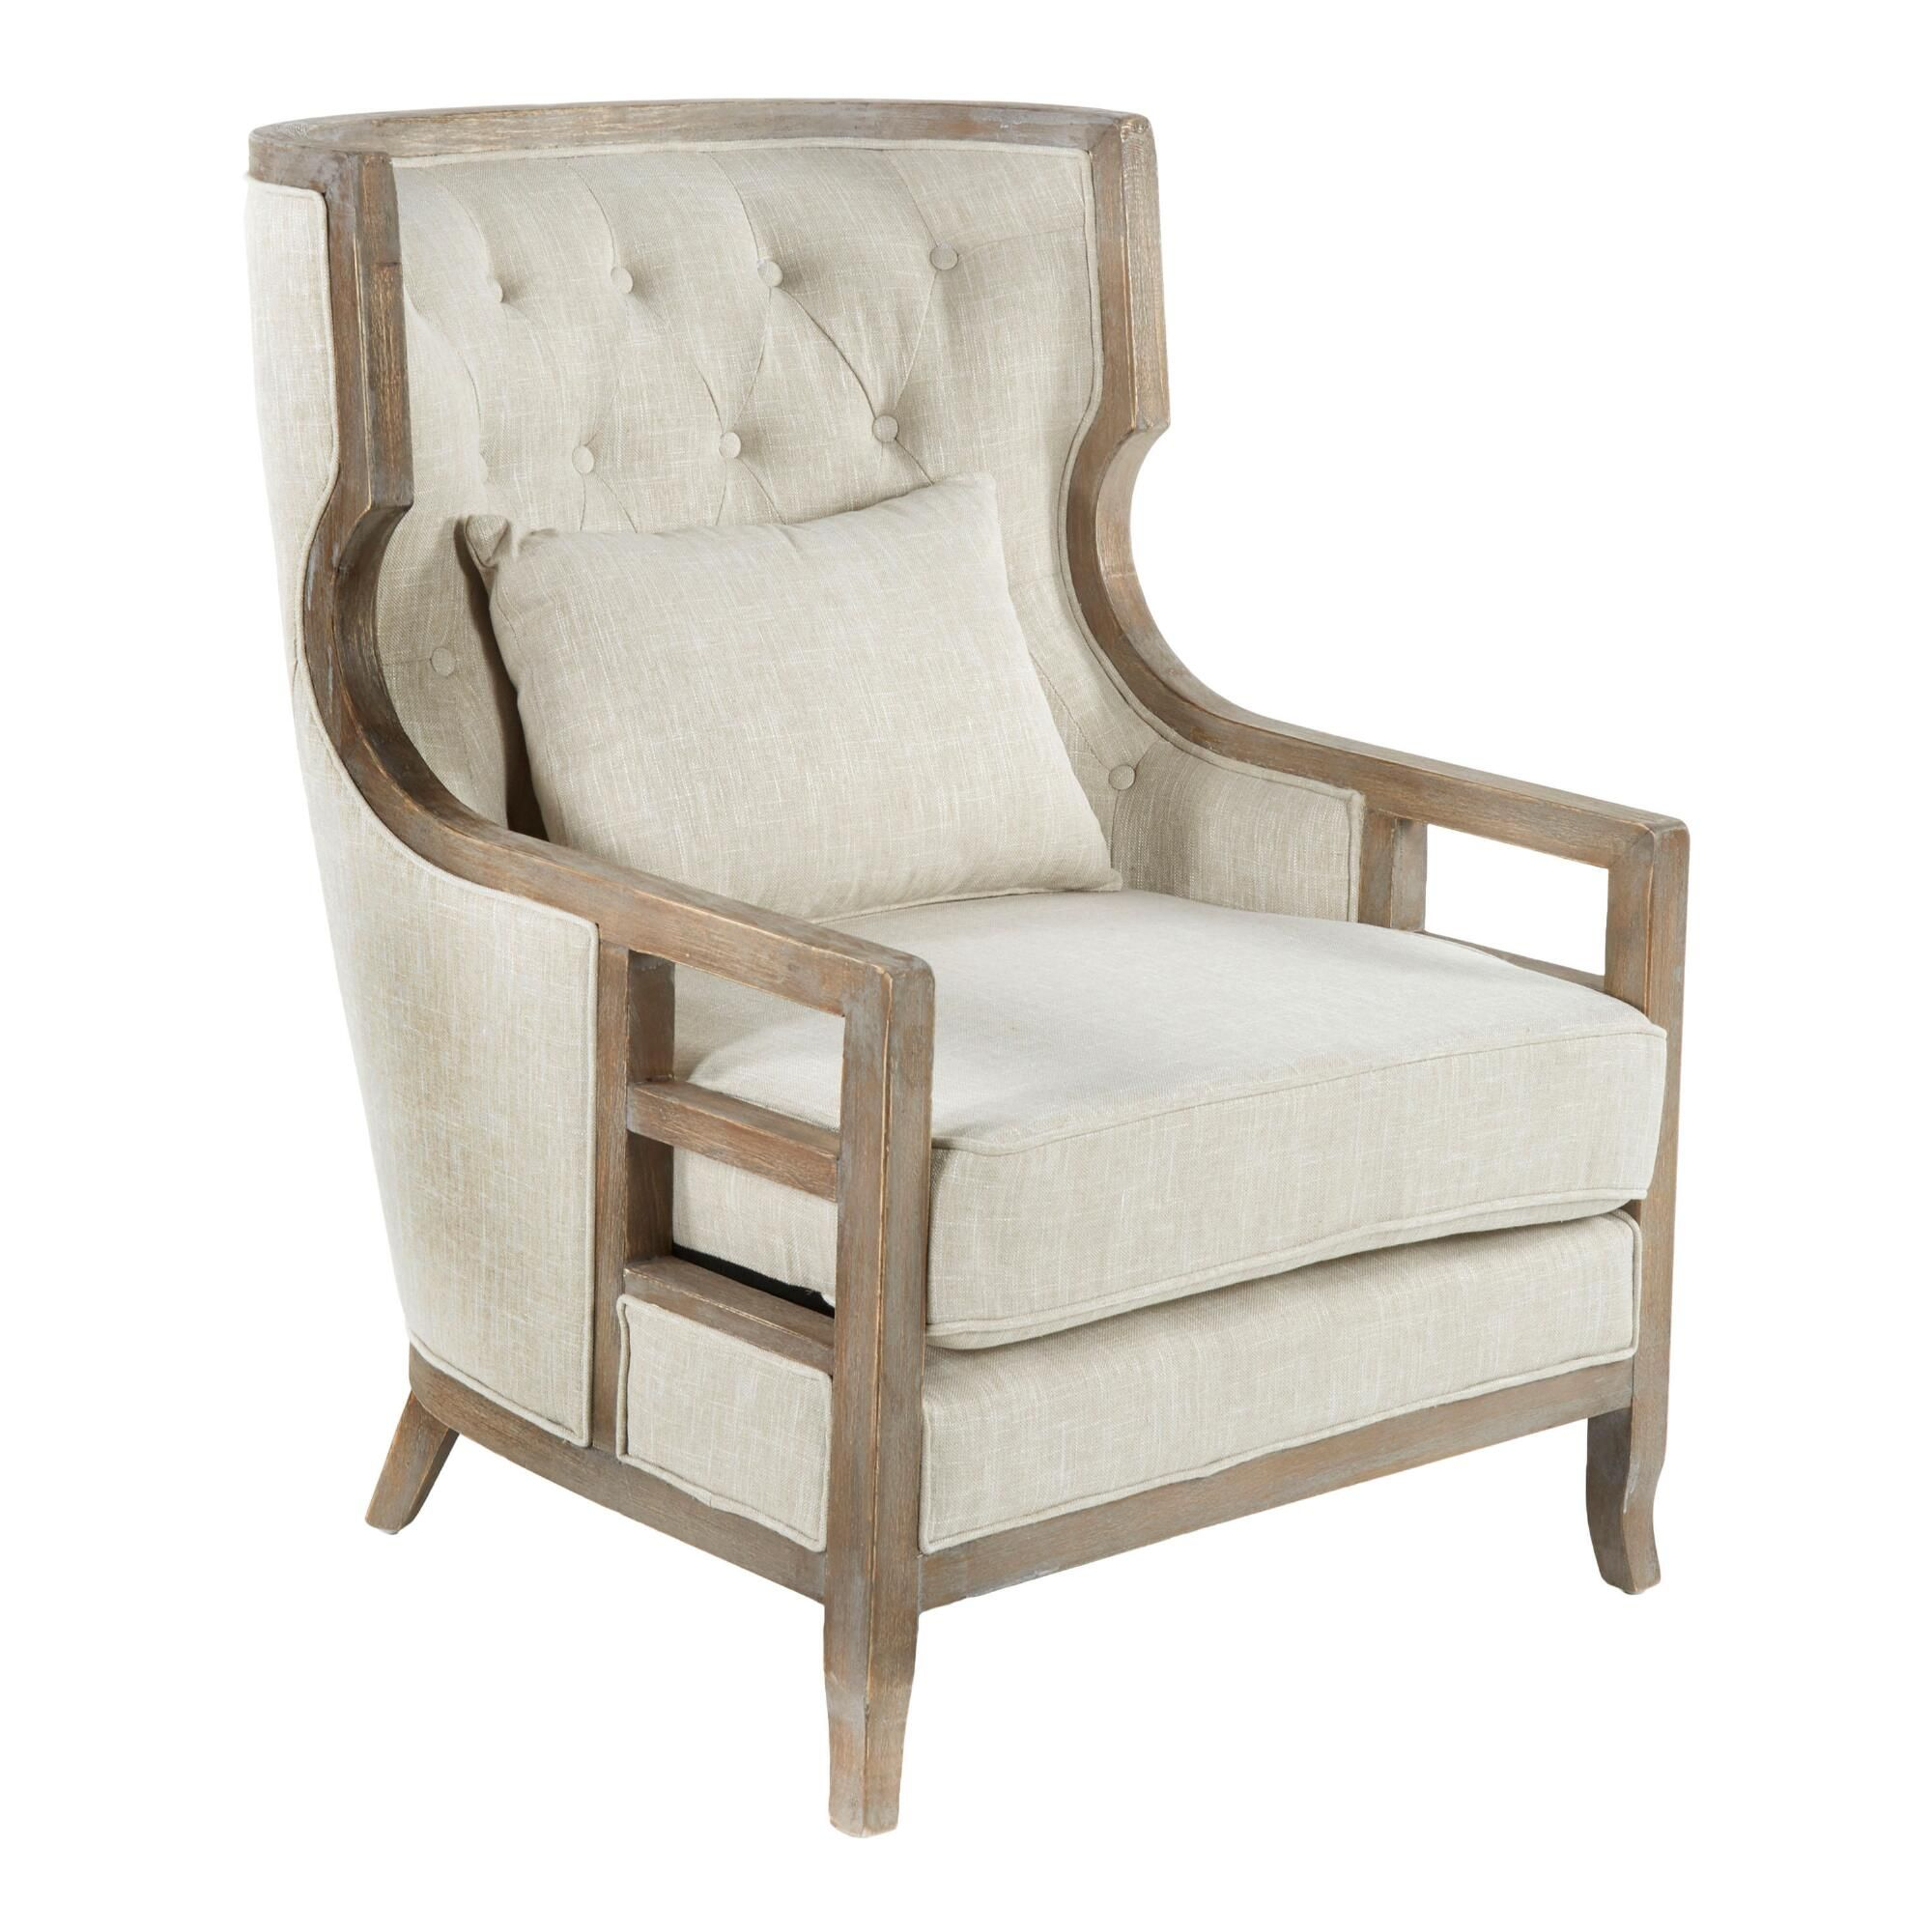 Beige Tufted Linen And Wood Willa Upholstered Armchair In Myia Armchairs (View 15 of 15)